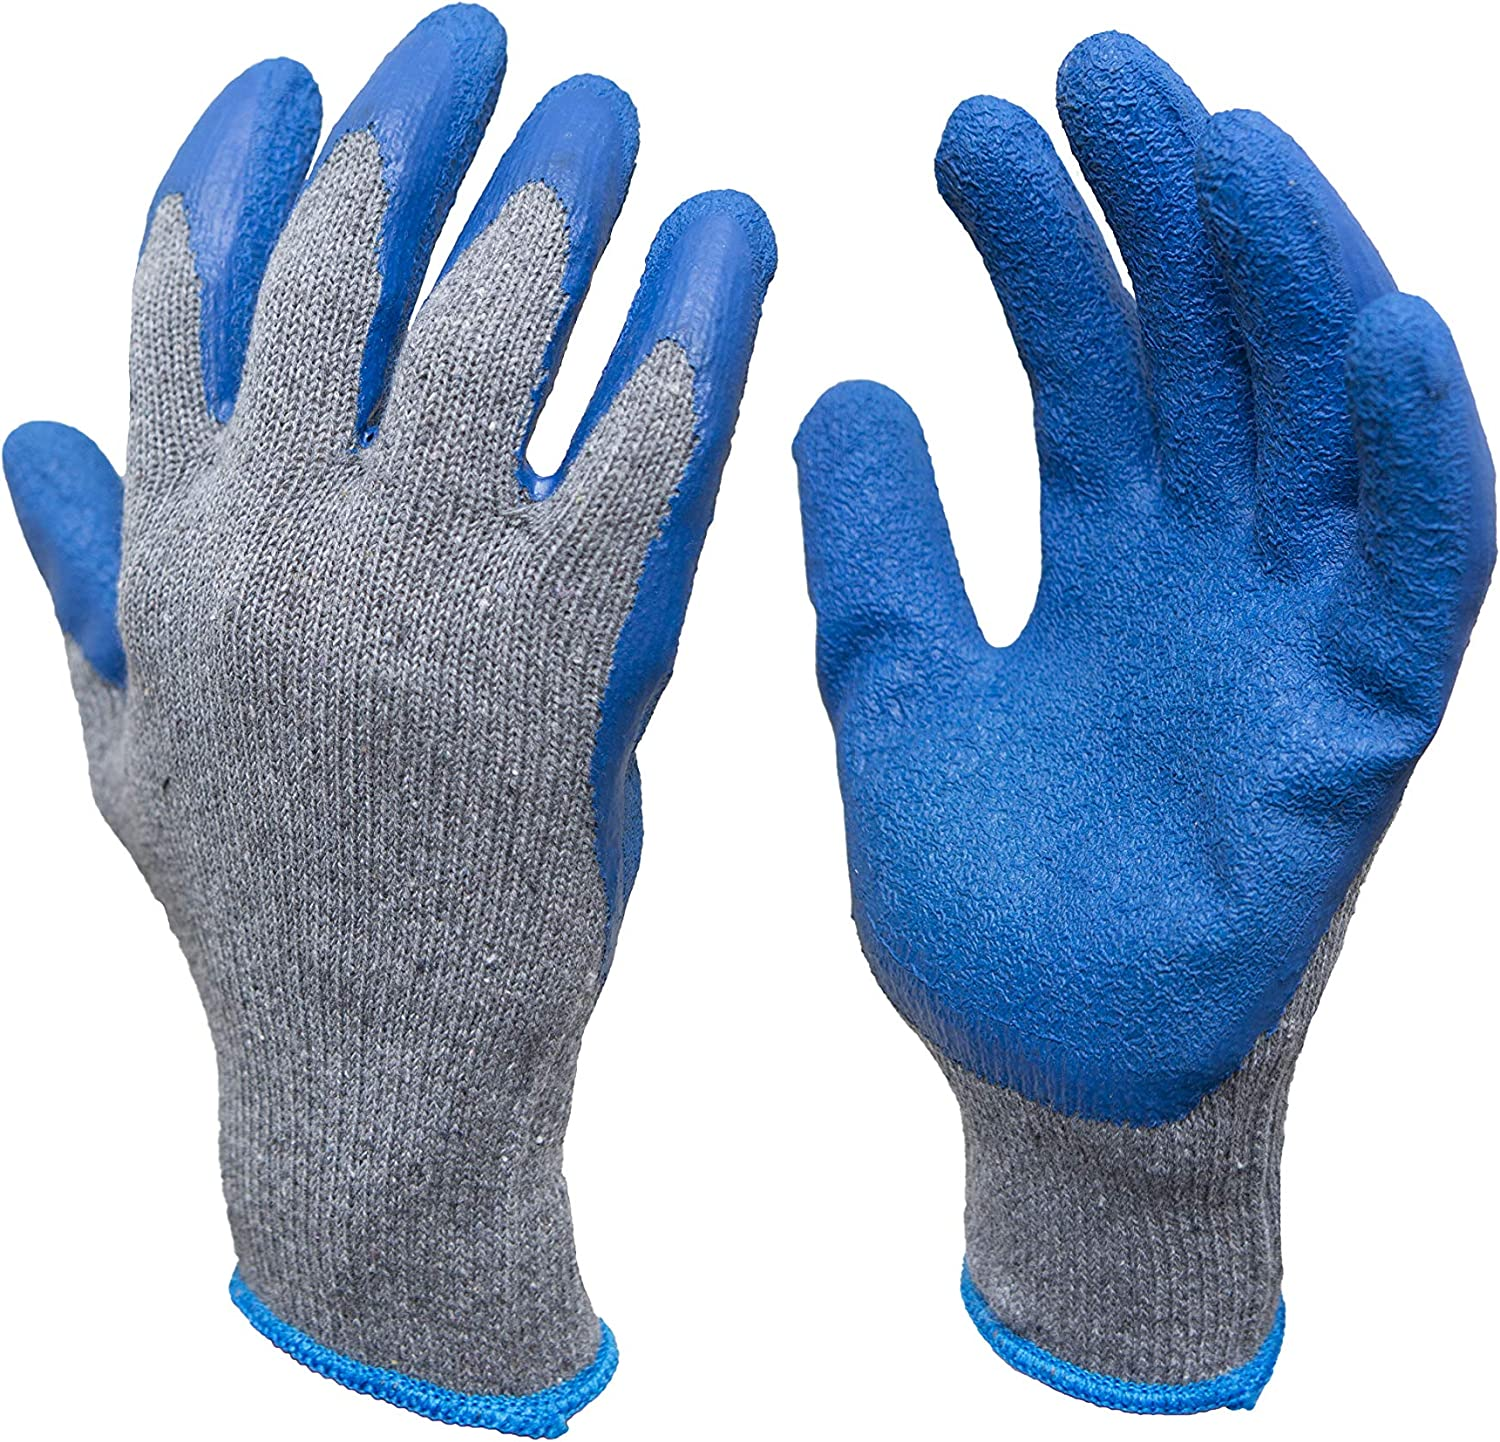 Amazon.com: G & F Products - 3100L-DZ-Parent 12 Pairs Large Rubber Latex  Double Coated Work Gloves for Construction, gardening gloves, heavy duty  Cotton Blend Blue: Home Improvement